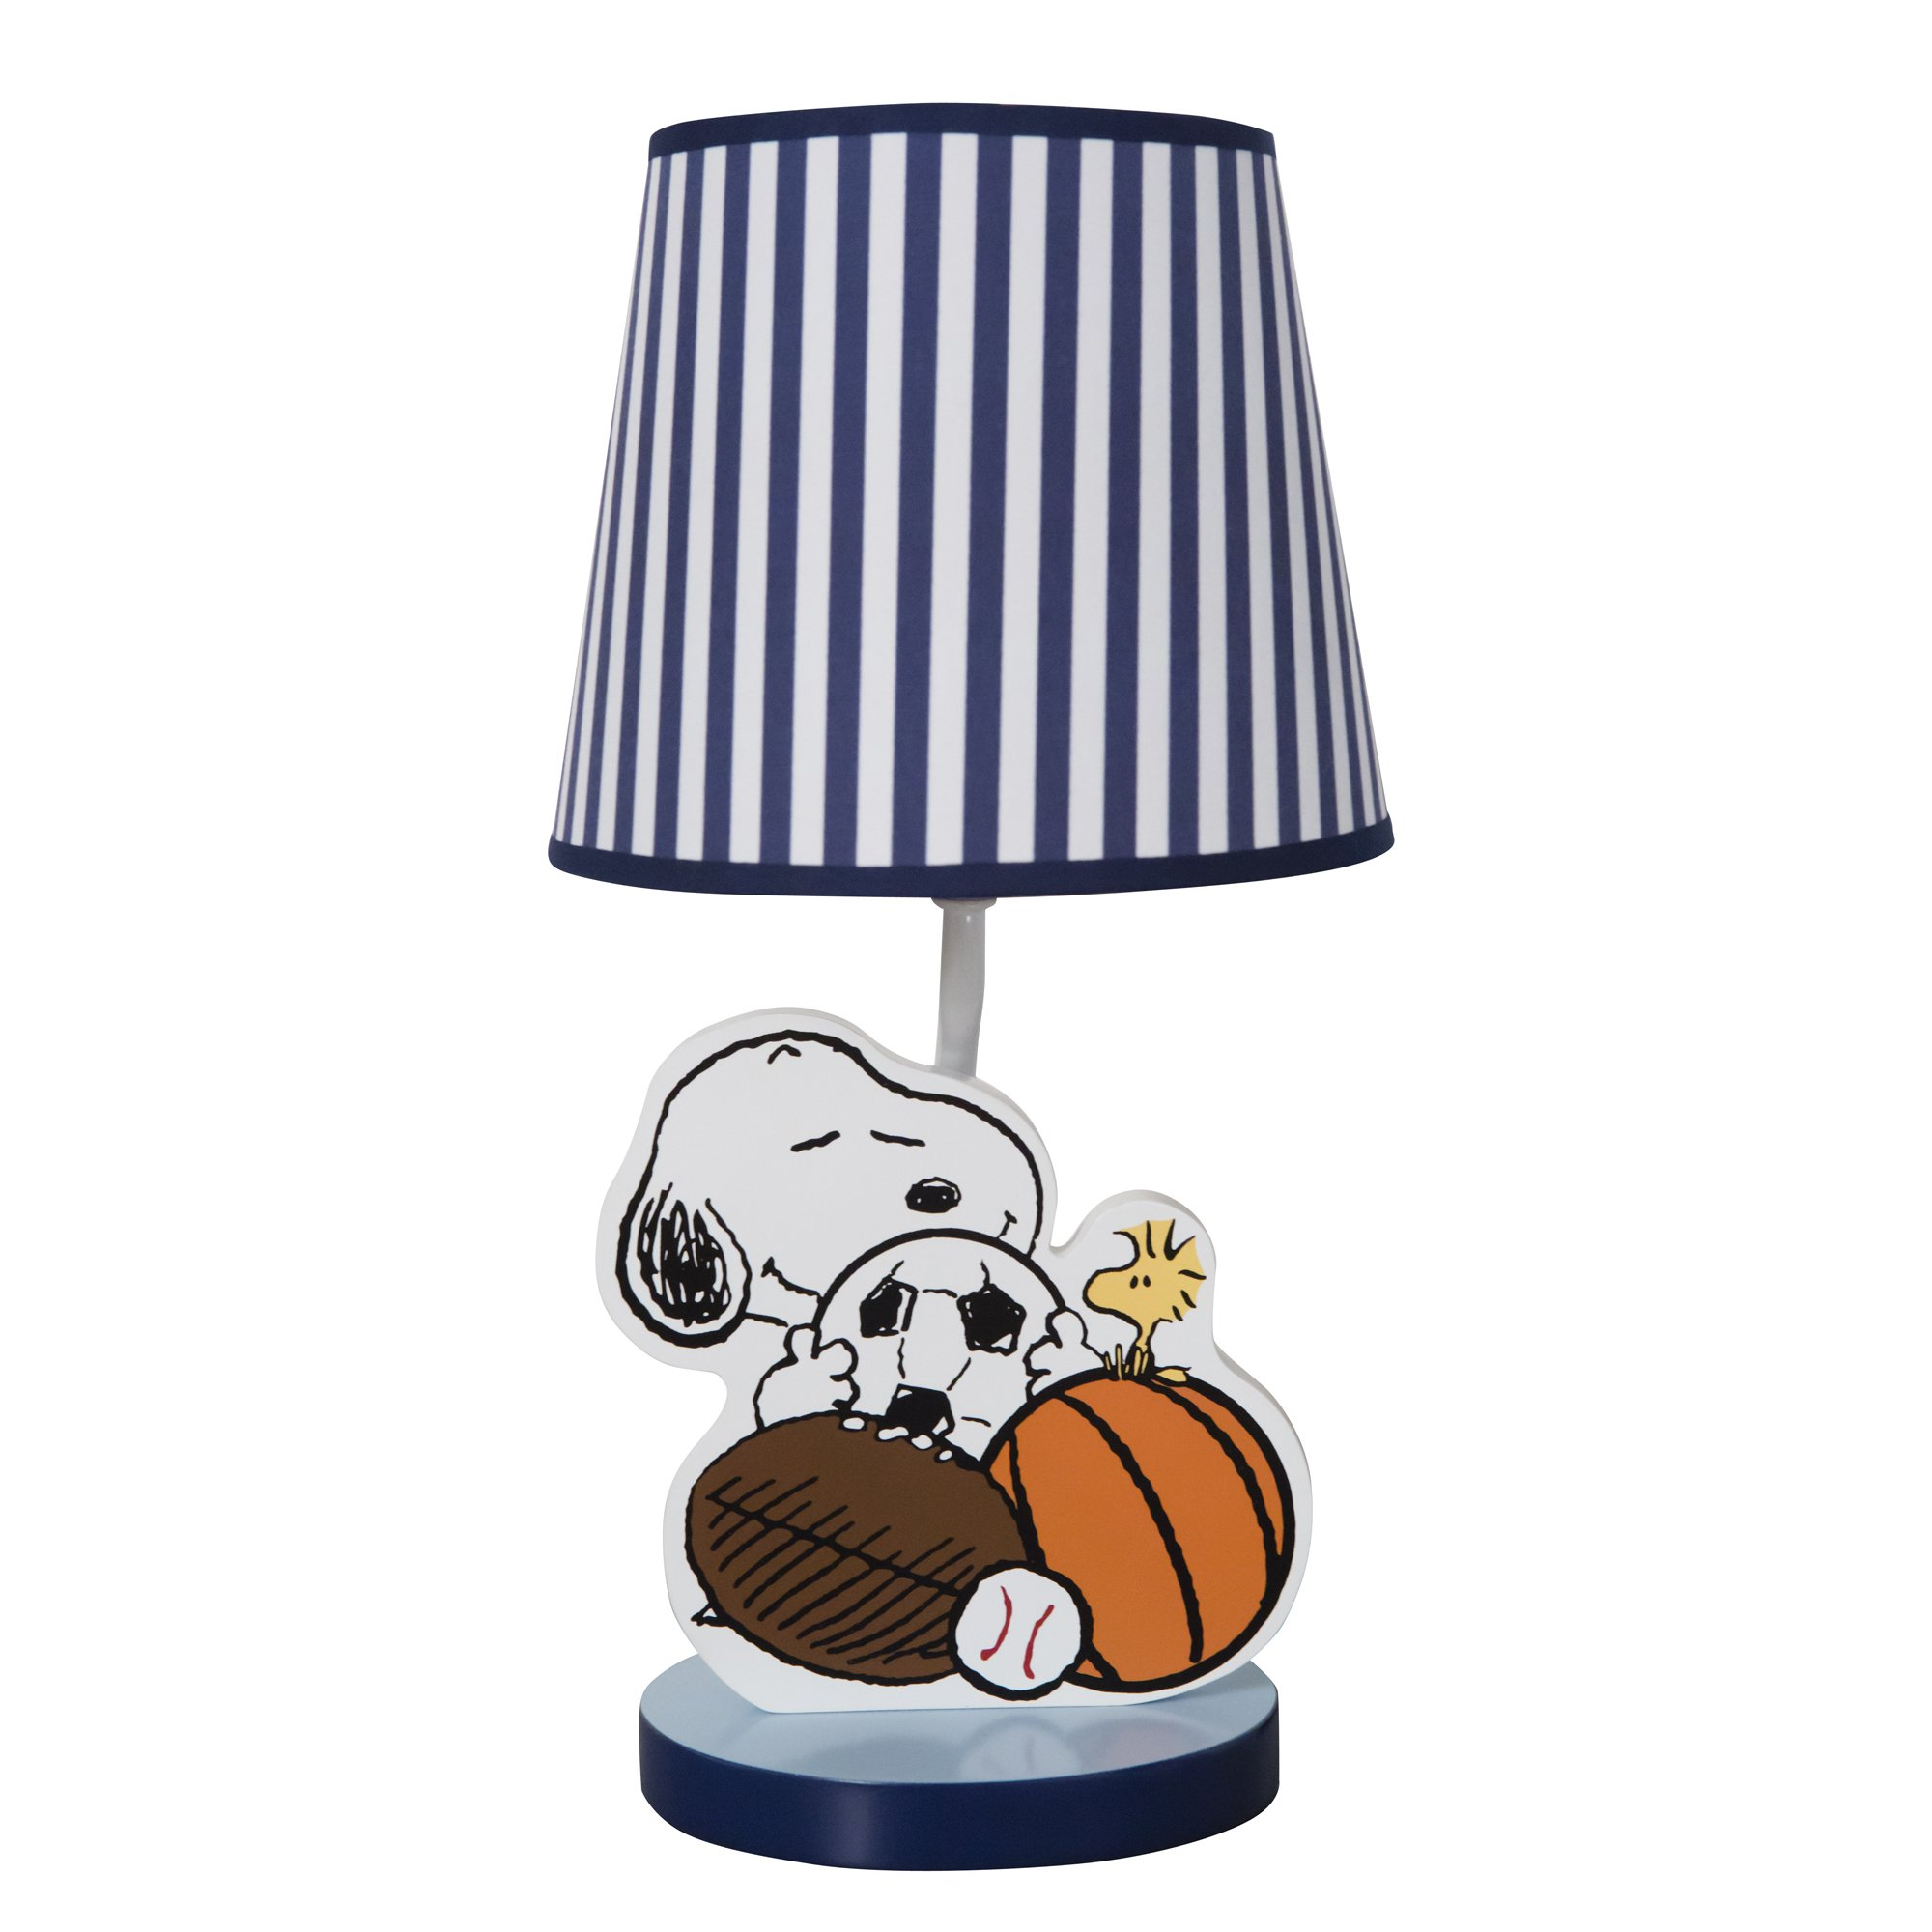 Bedtime Originals Snoopy Sports Lamp with Shade and Bulb by Bedtime Originals